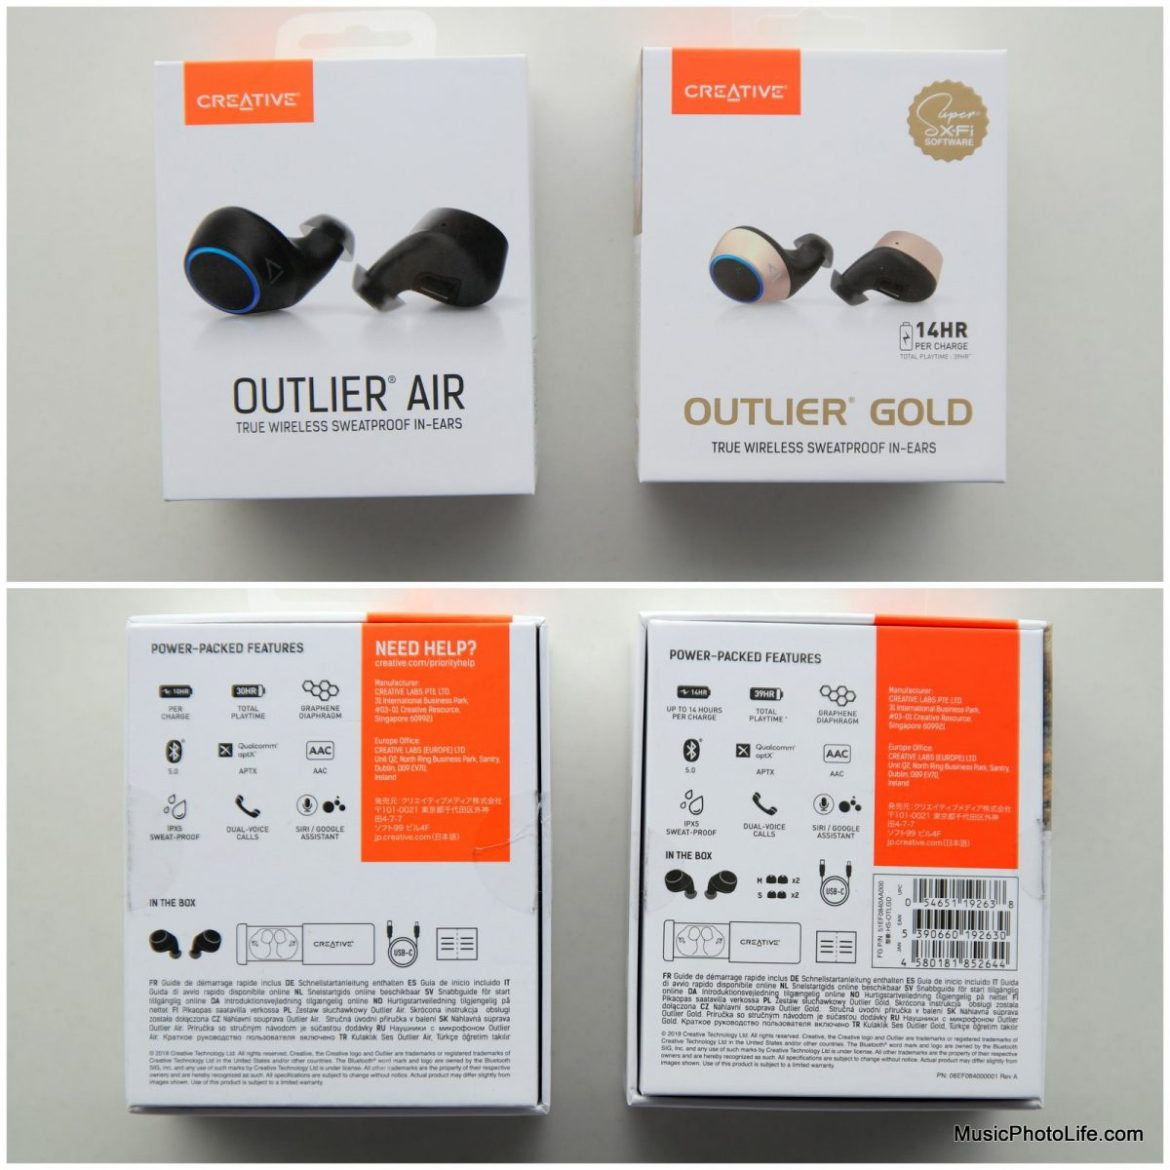 Creative Outlier Gold and Outlier Air true wireless earphones review by musicphotolife.com, Singapore headphones review site